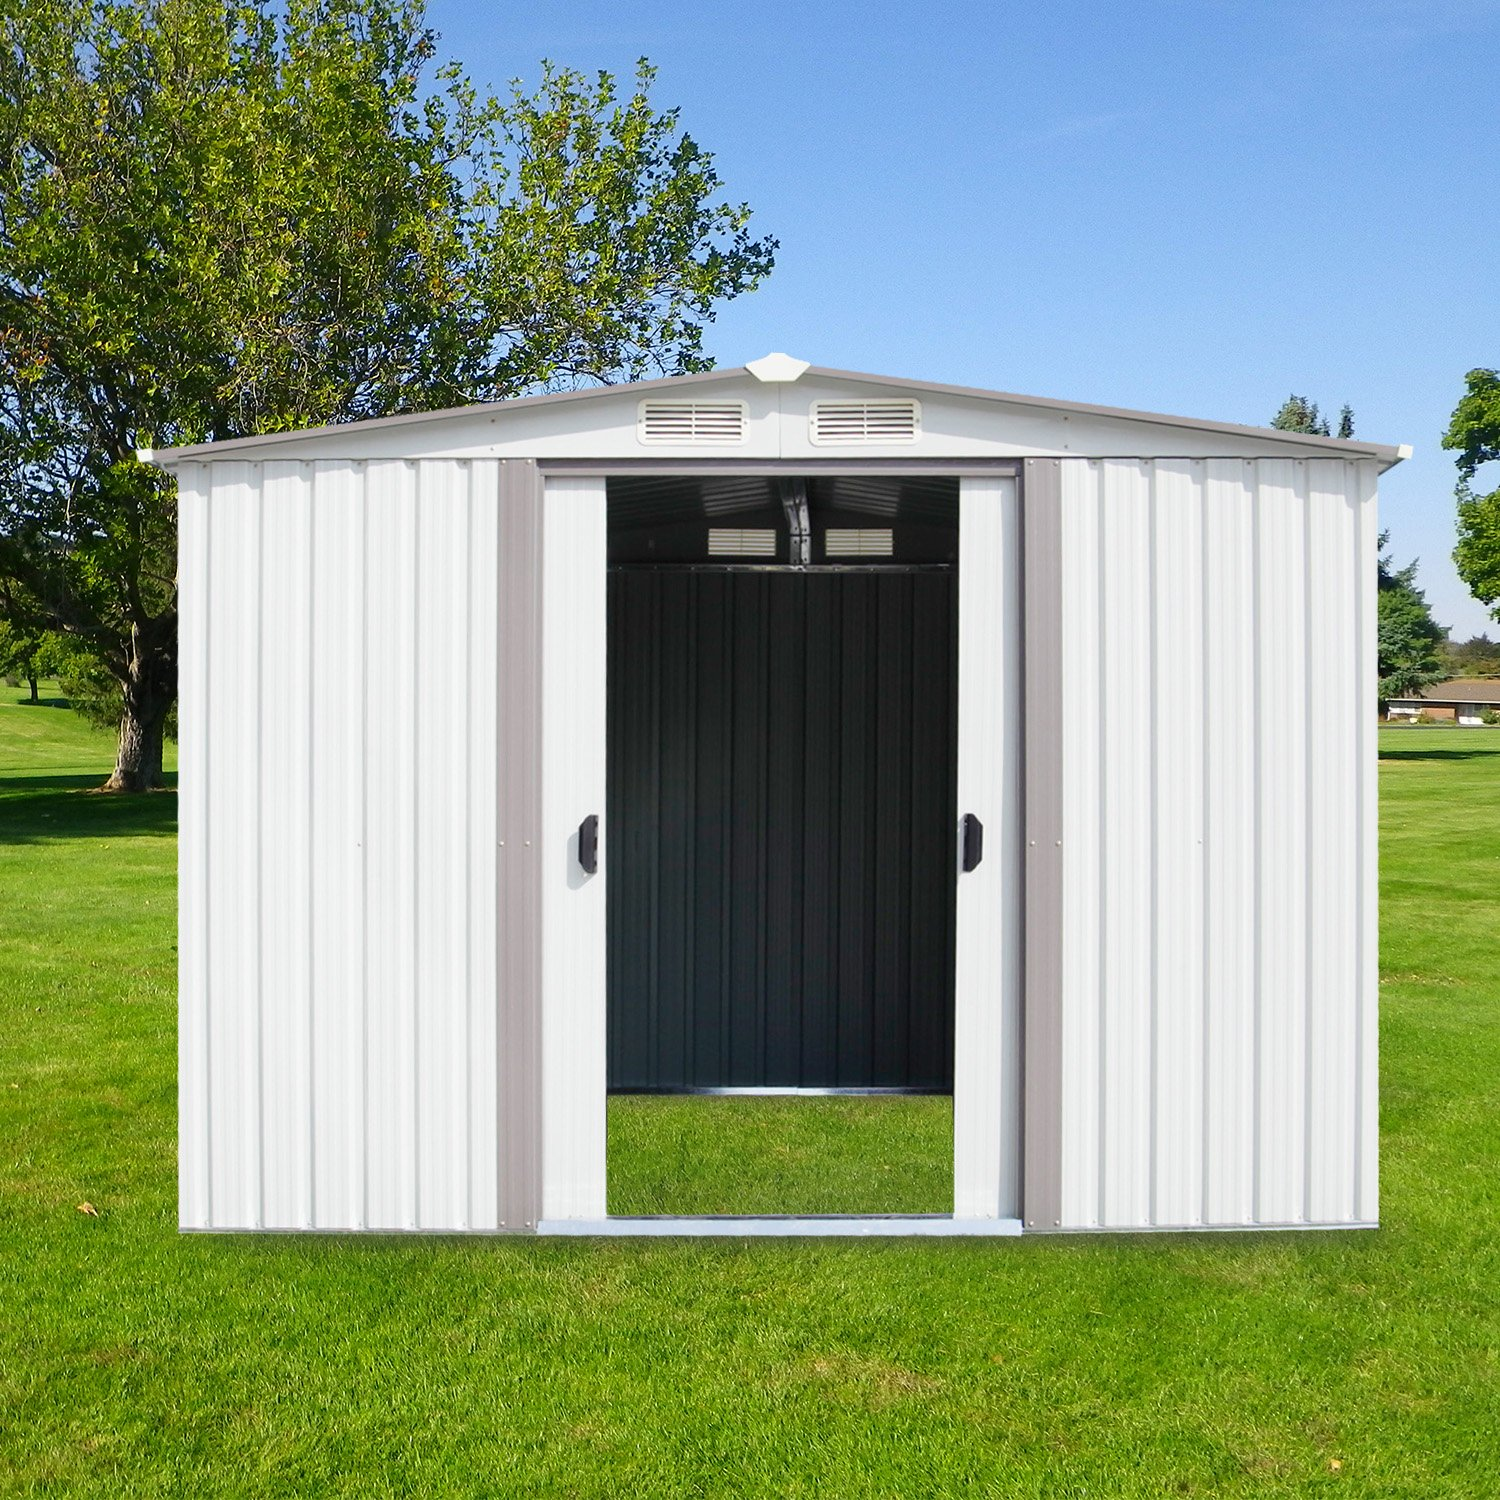 Kinbor New 8' x 6' Outdoor White Steel Garden Storage Utility Tool Shed Backyard Lawn Building Garage w/Sliding Door by Kinbor (Image #1)